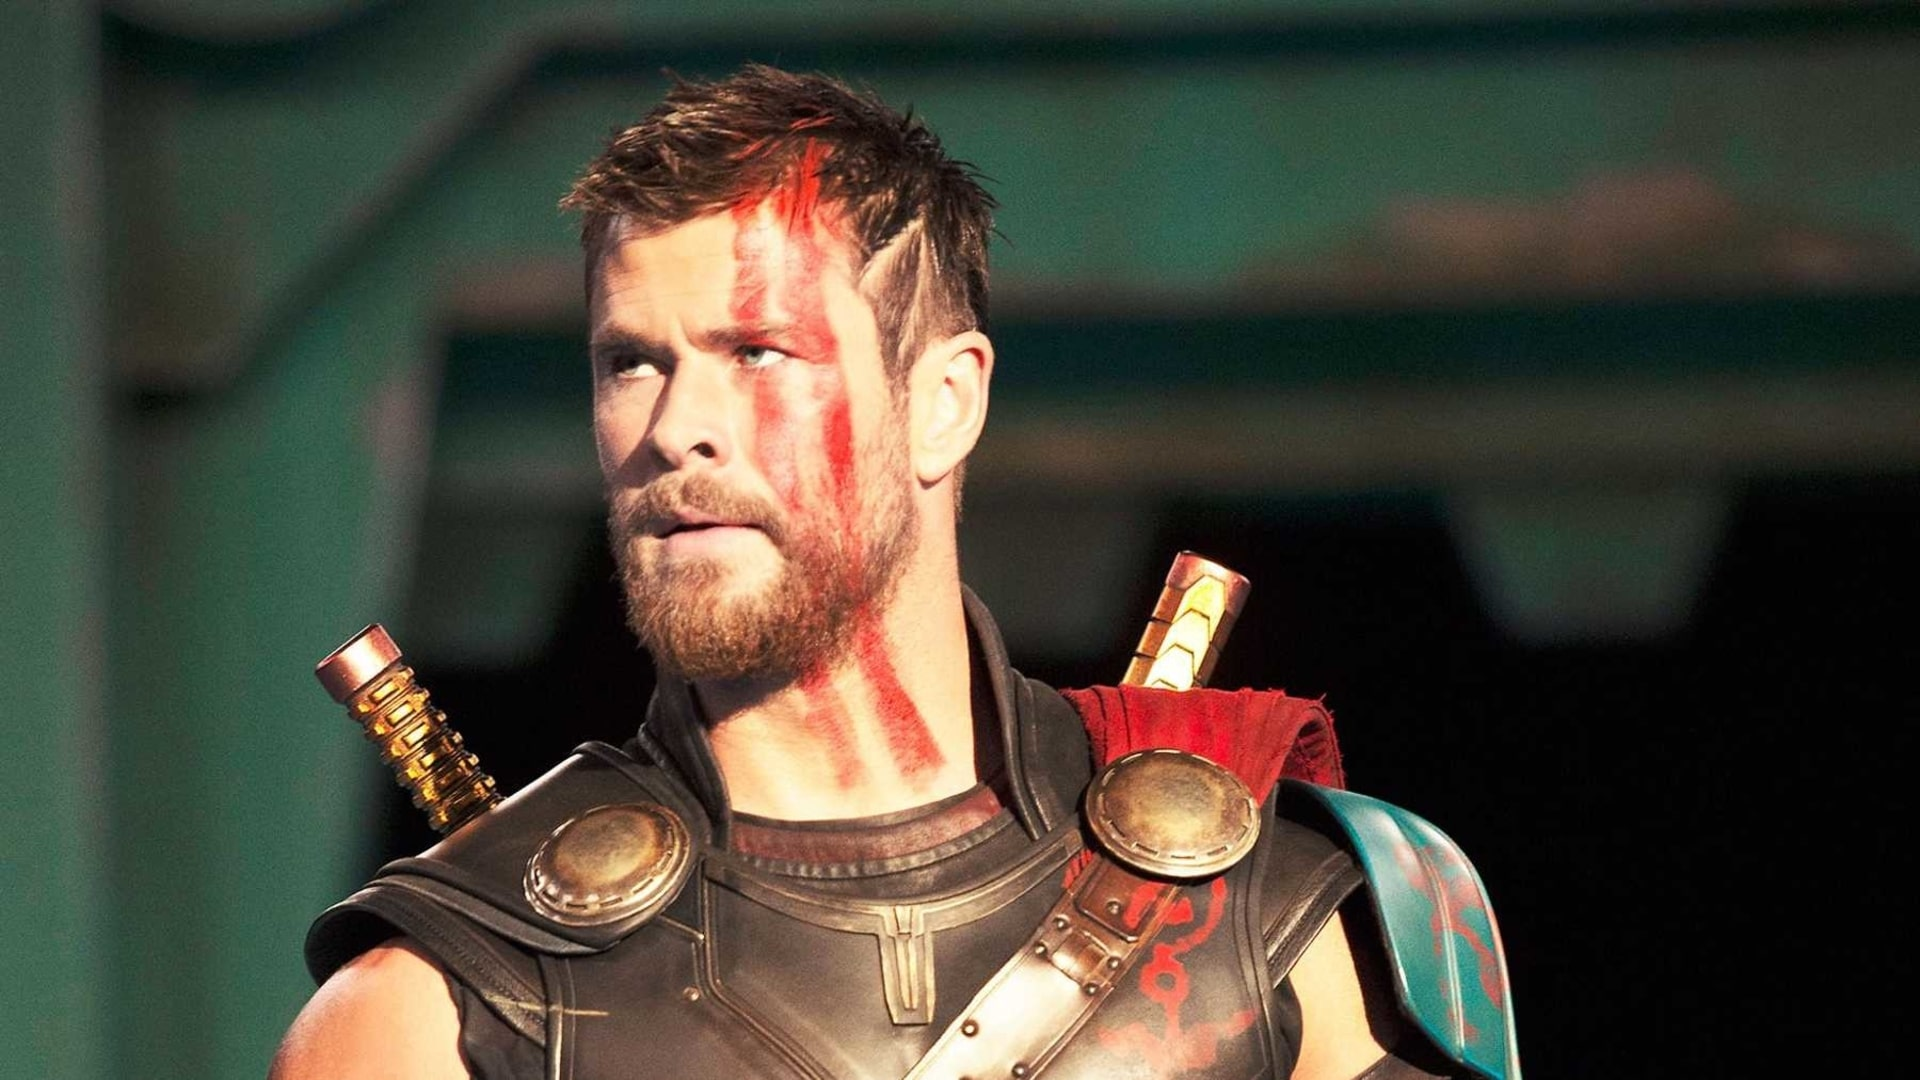 Thor: Ragnarok brought immense changes in Thor's character